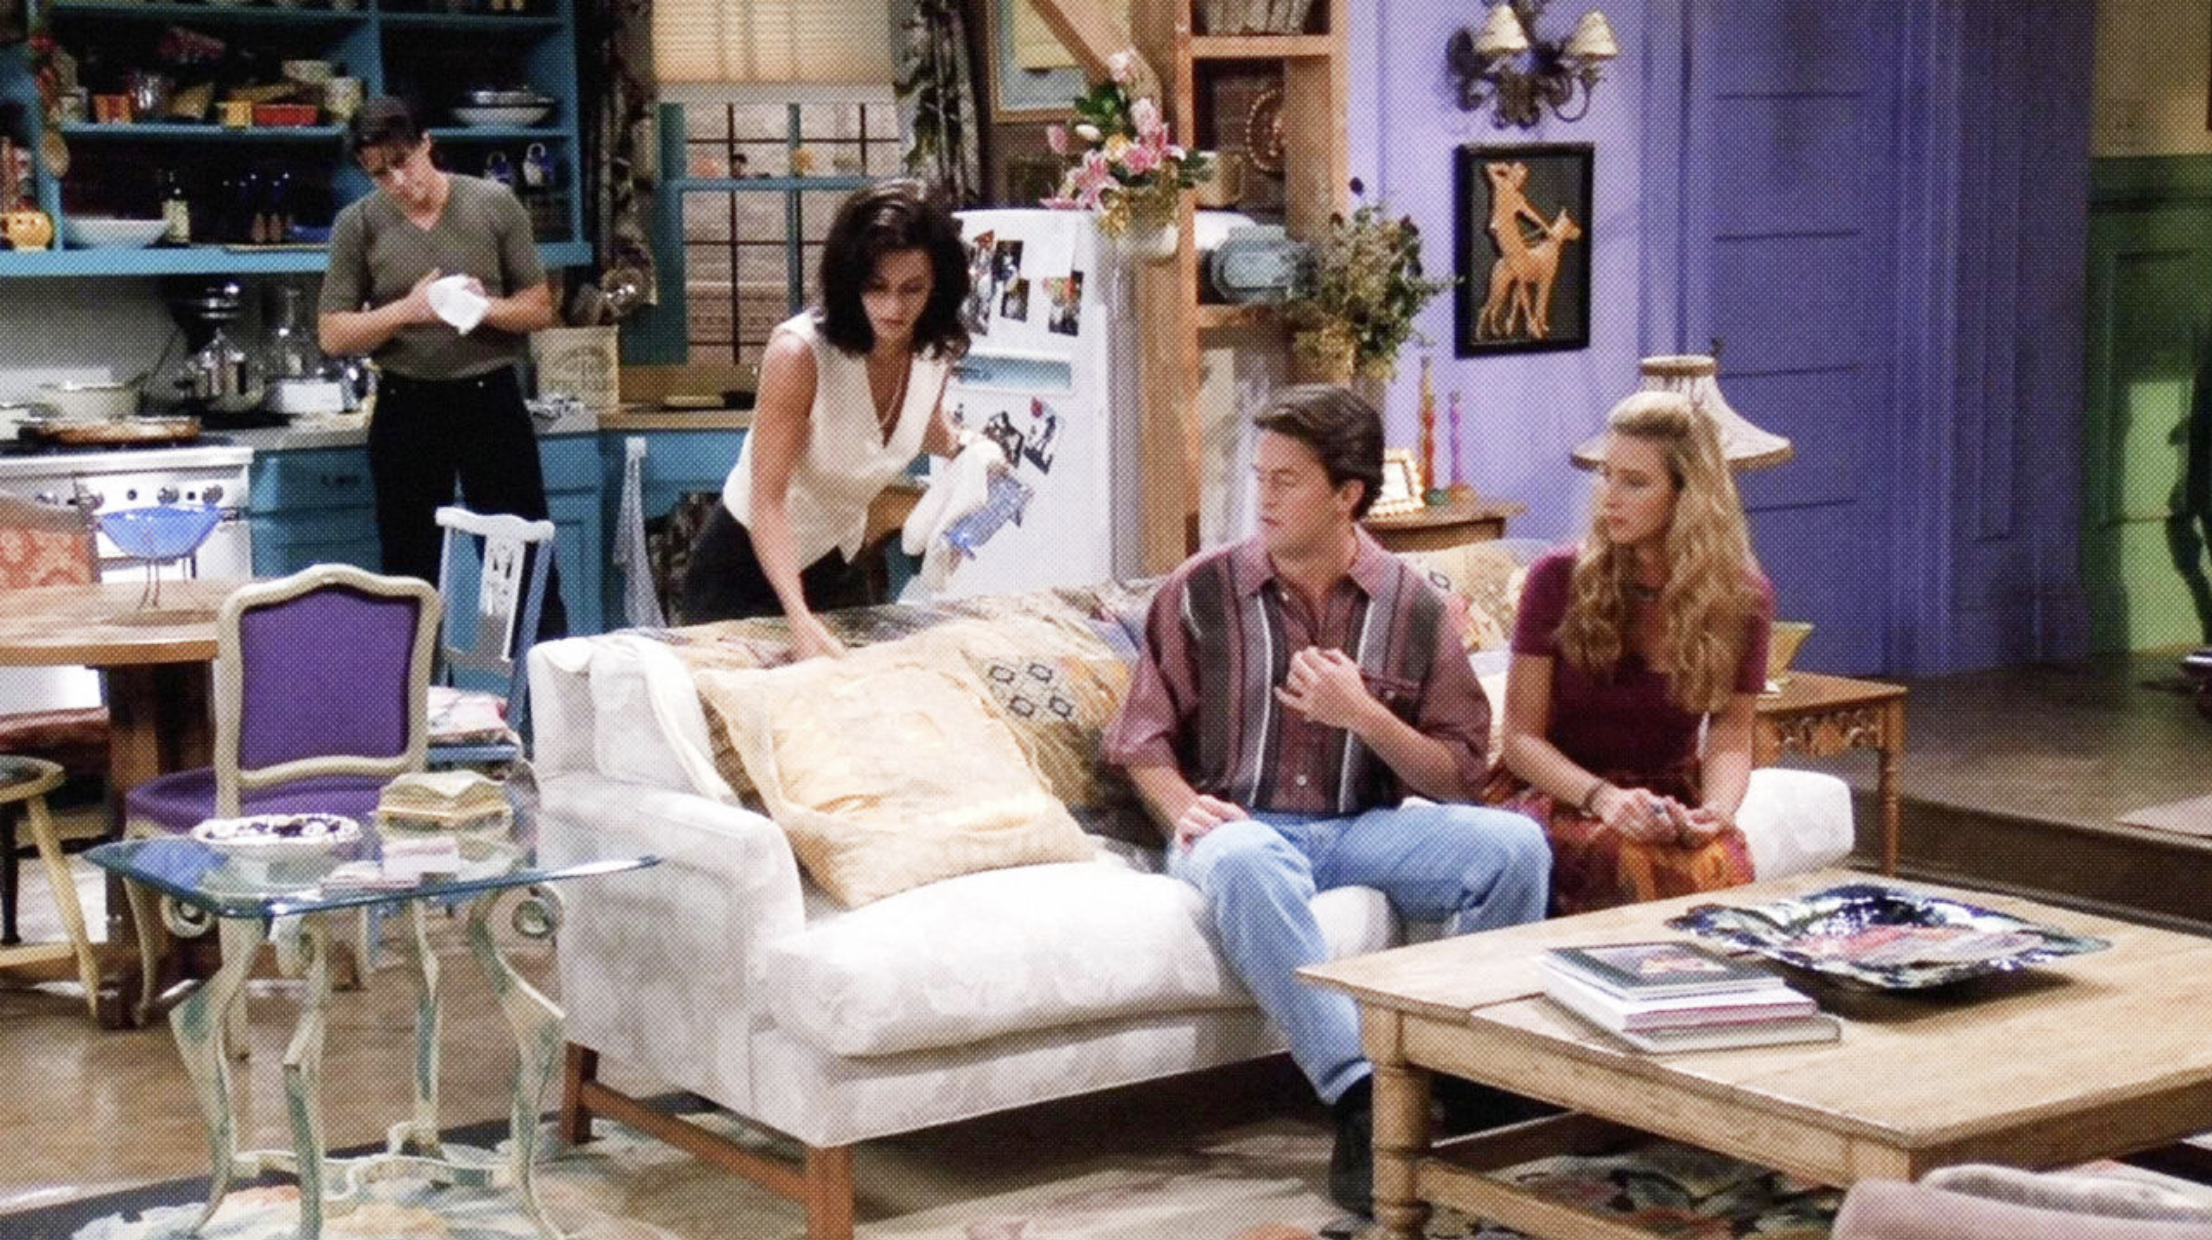 If Friends Was Filmed Today, Monica Gellar's Apartment Would've Looked Very Different